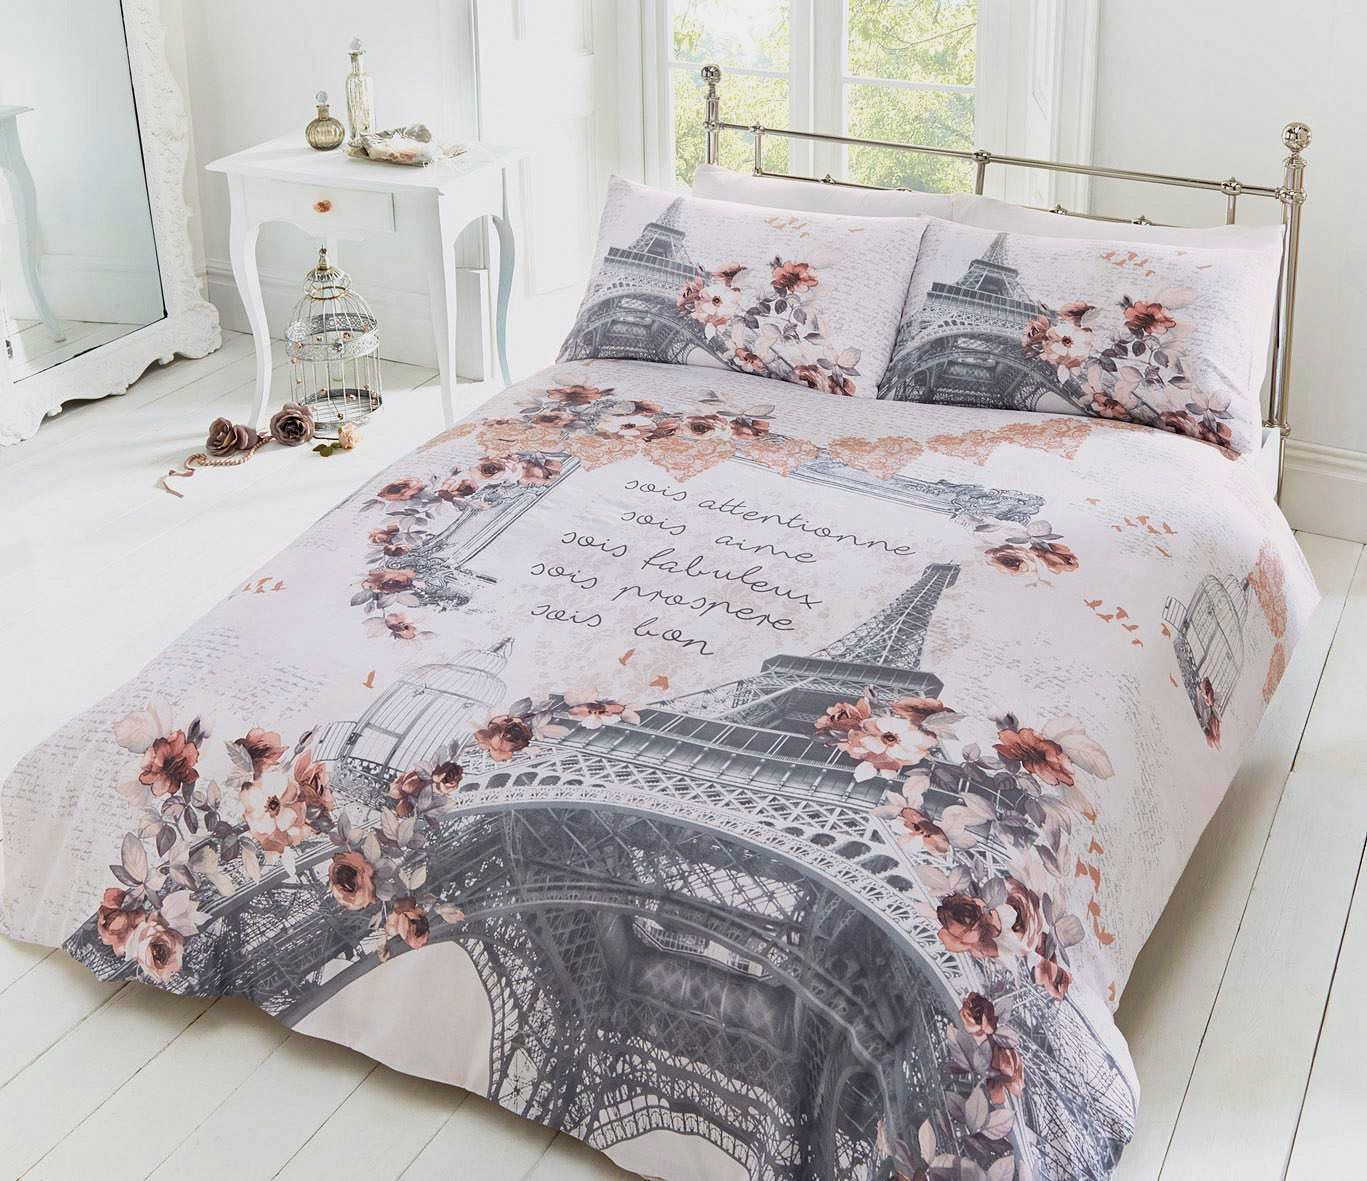 Comforter Cover Full Spring In Paris Bedding Twin Full Queen Duvet Cover Set